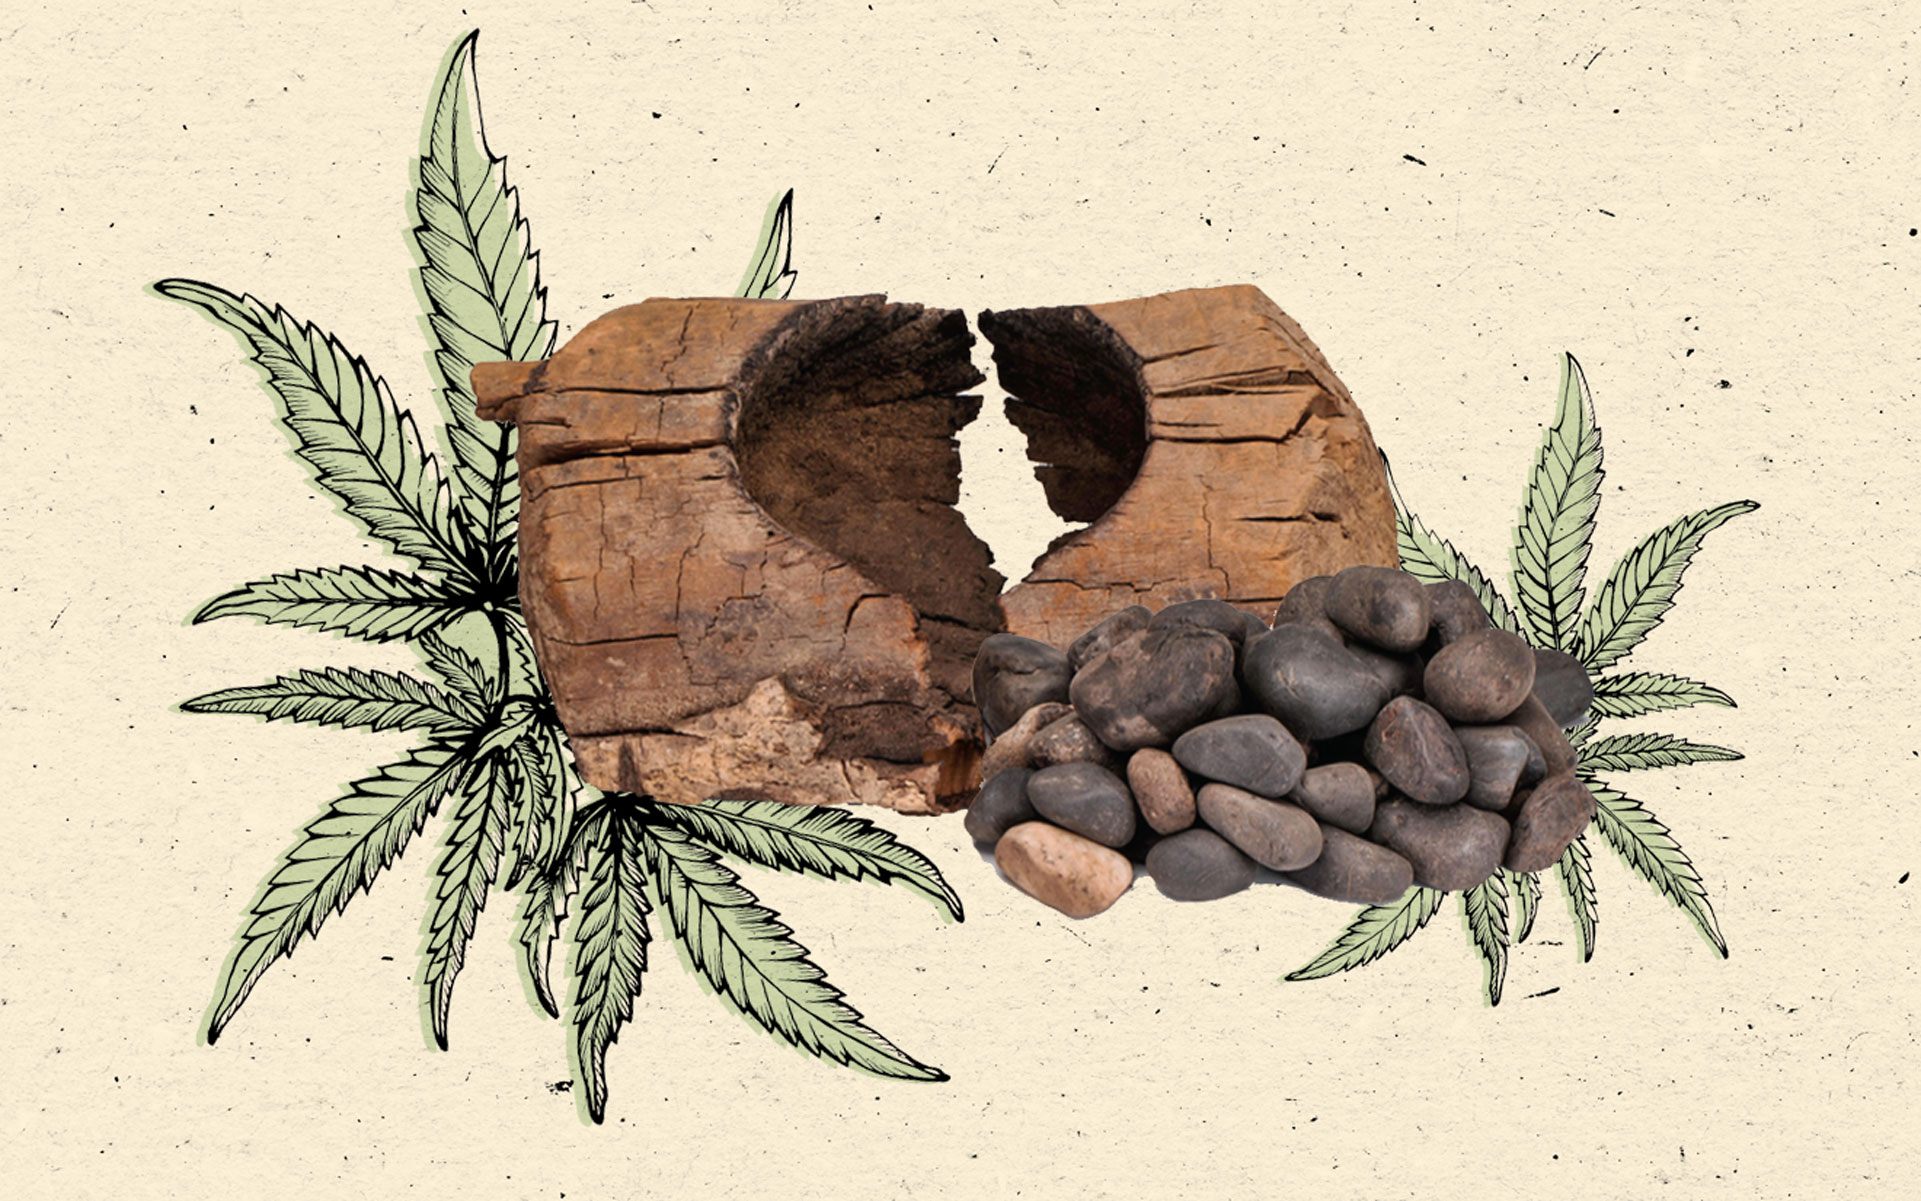 Leafly podcast The Roll-Up discusses the discovery of an ancient Chinese cannabis smoking device.